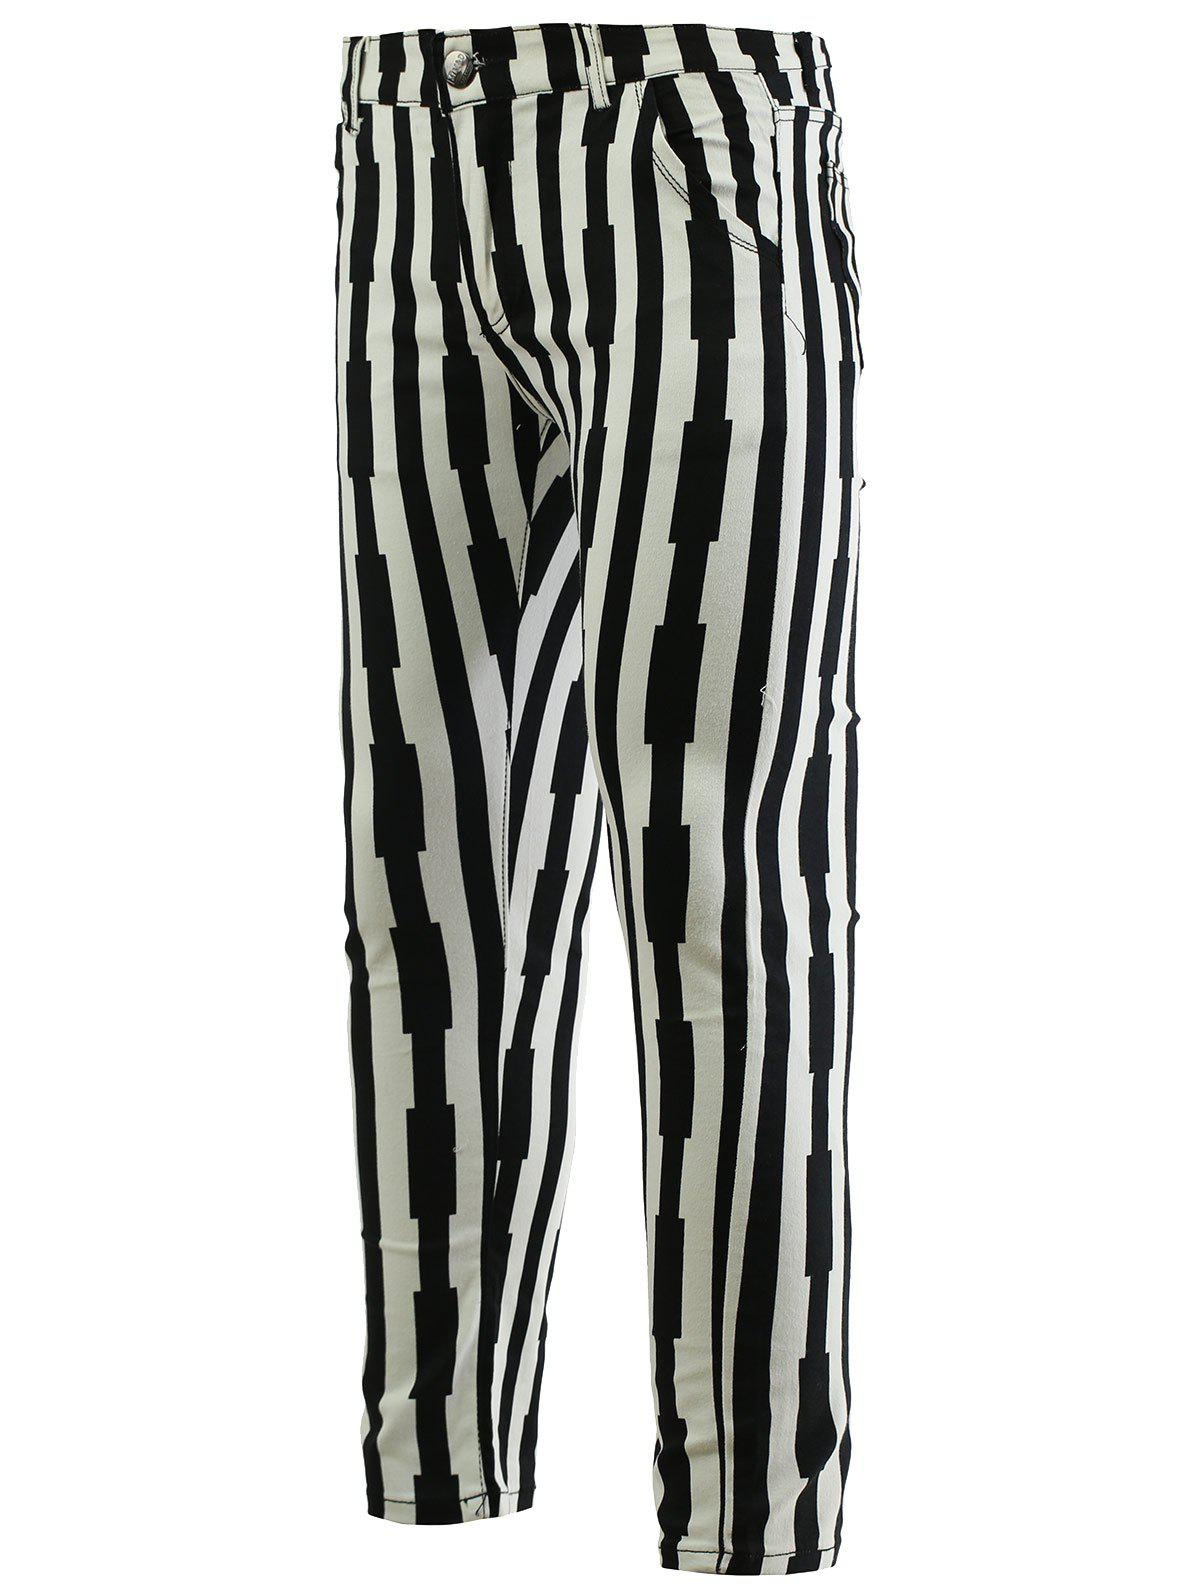 Striped Zipper Fly Skinny Men's Tapered Pants - WHITE/BLACK 33